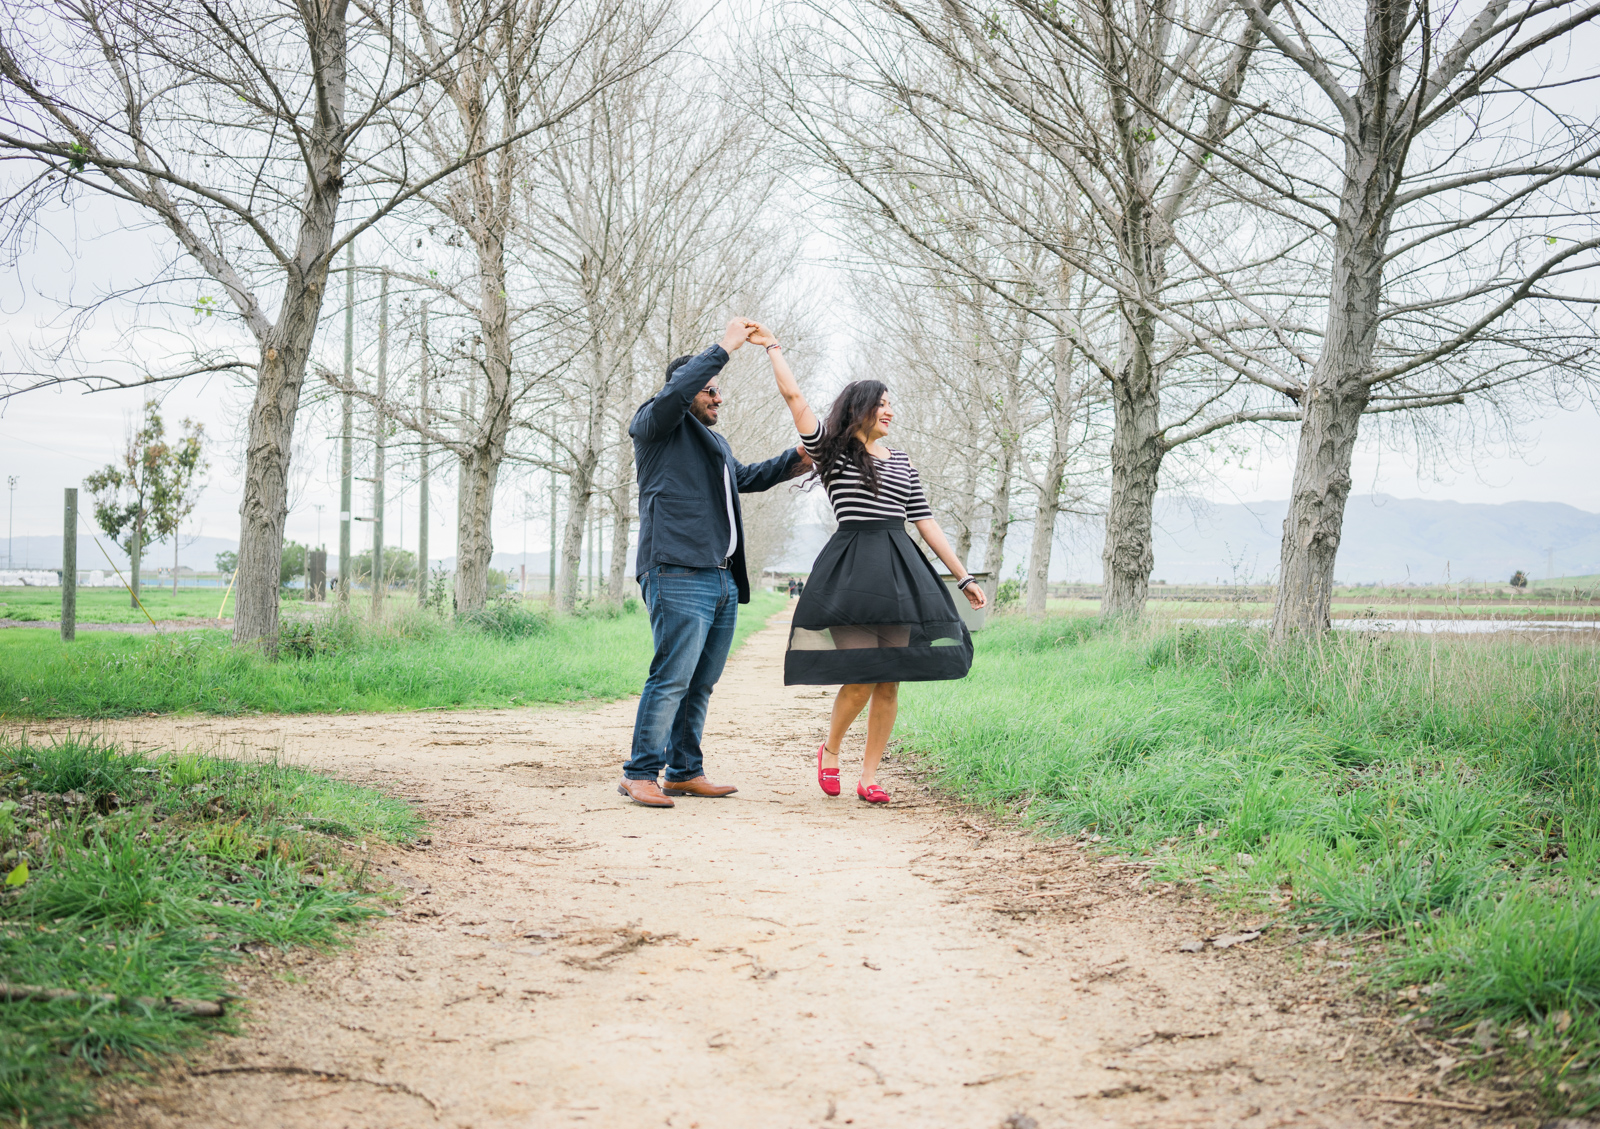 The Waltzing Couple